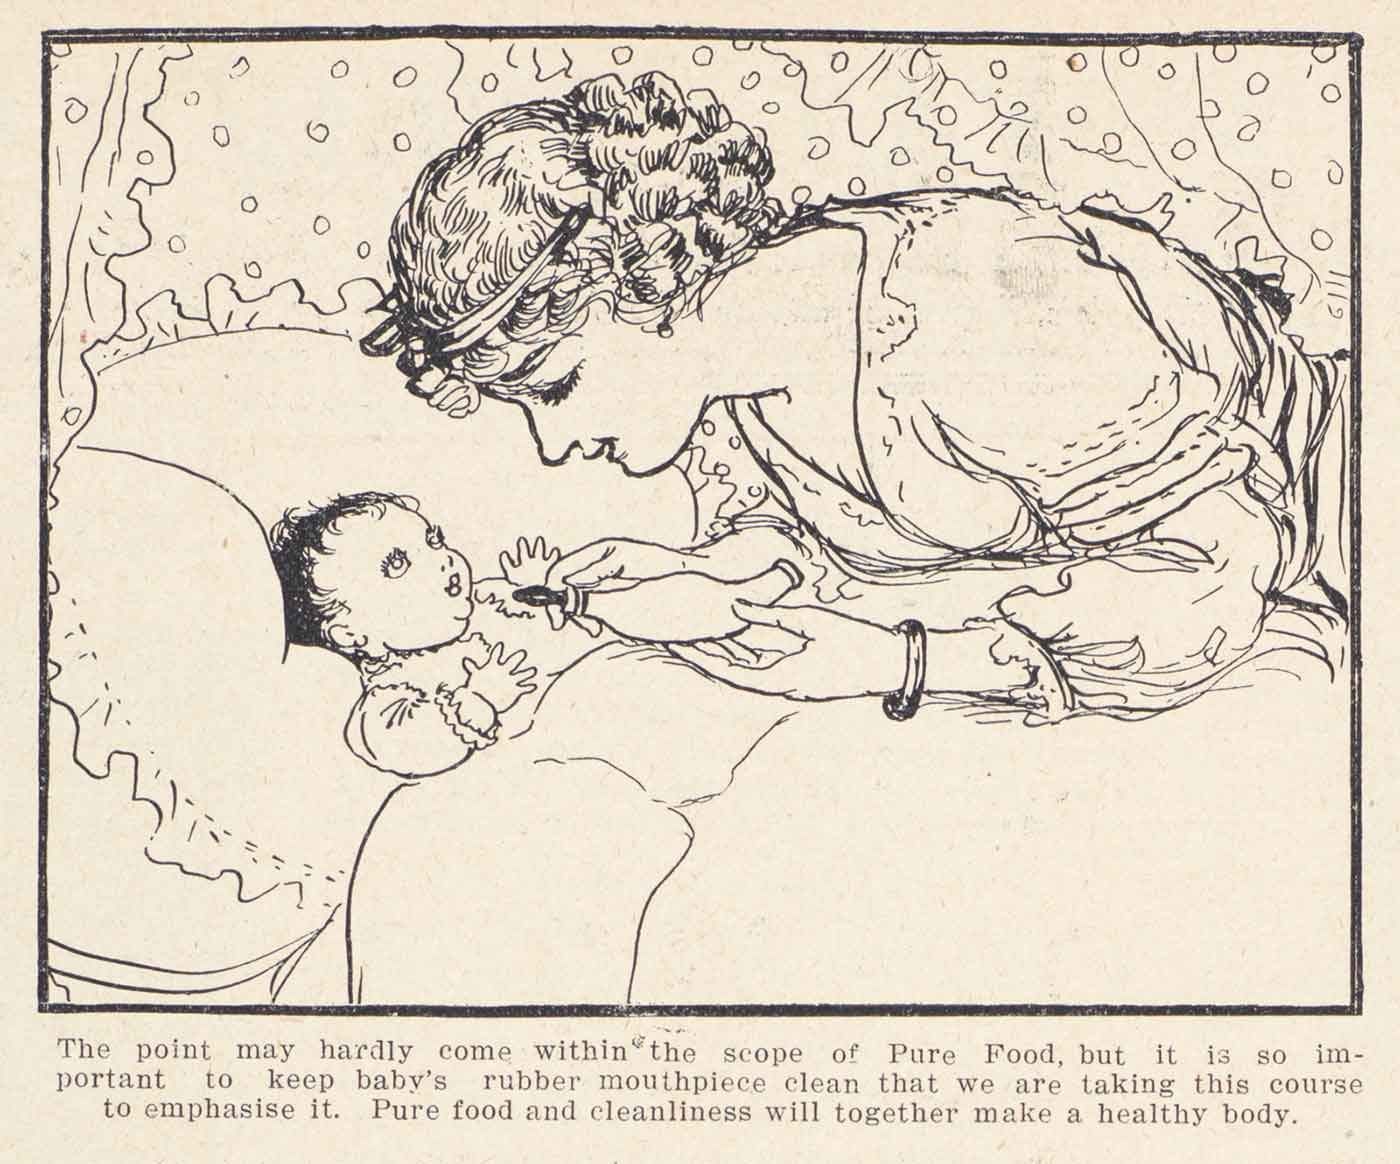 An illustration of a woman leaning over a baby in a cot.  The woman is holding a milk bottle with a rubber mouthpiece.  The text reads 'The point may hardly come within the scope of Pure Food, but it is so important to keep baby's rubber mouthpiece clean that we are taking this course to emphasise it.  Pure food and cleanliness will together make a healthy body.